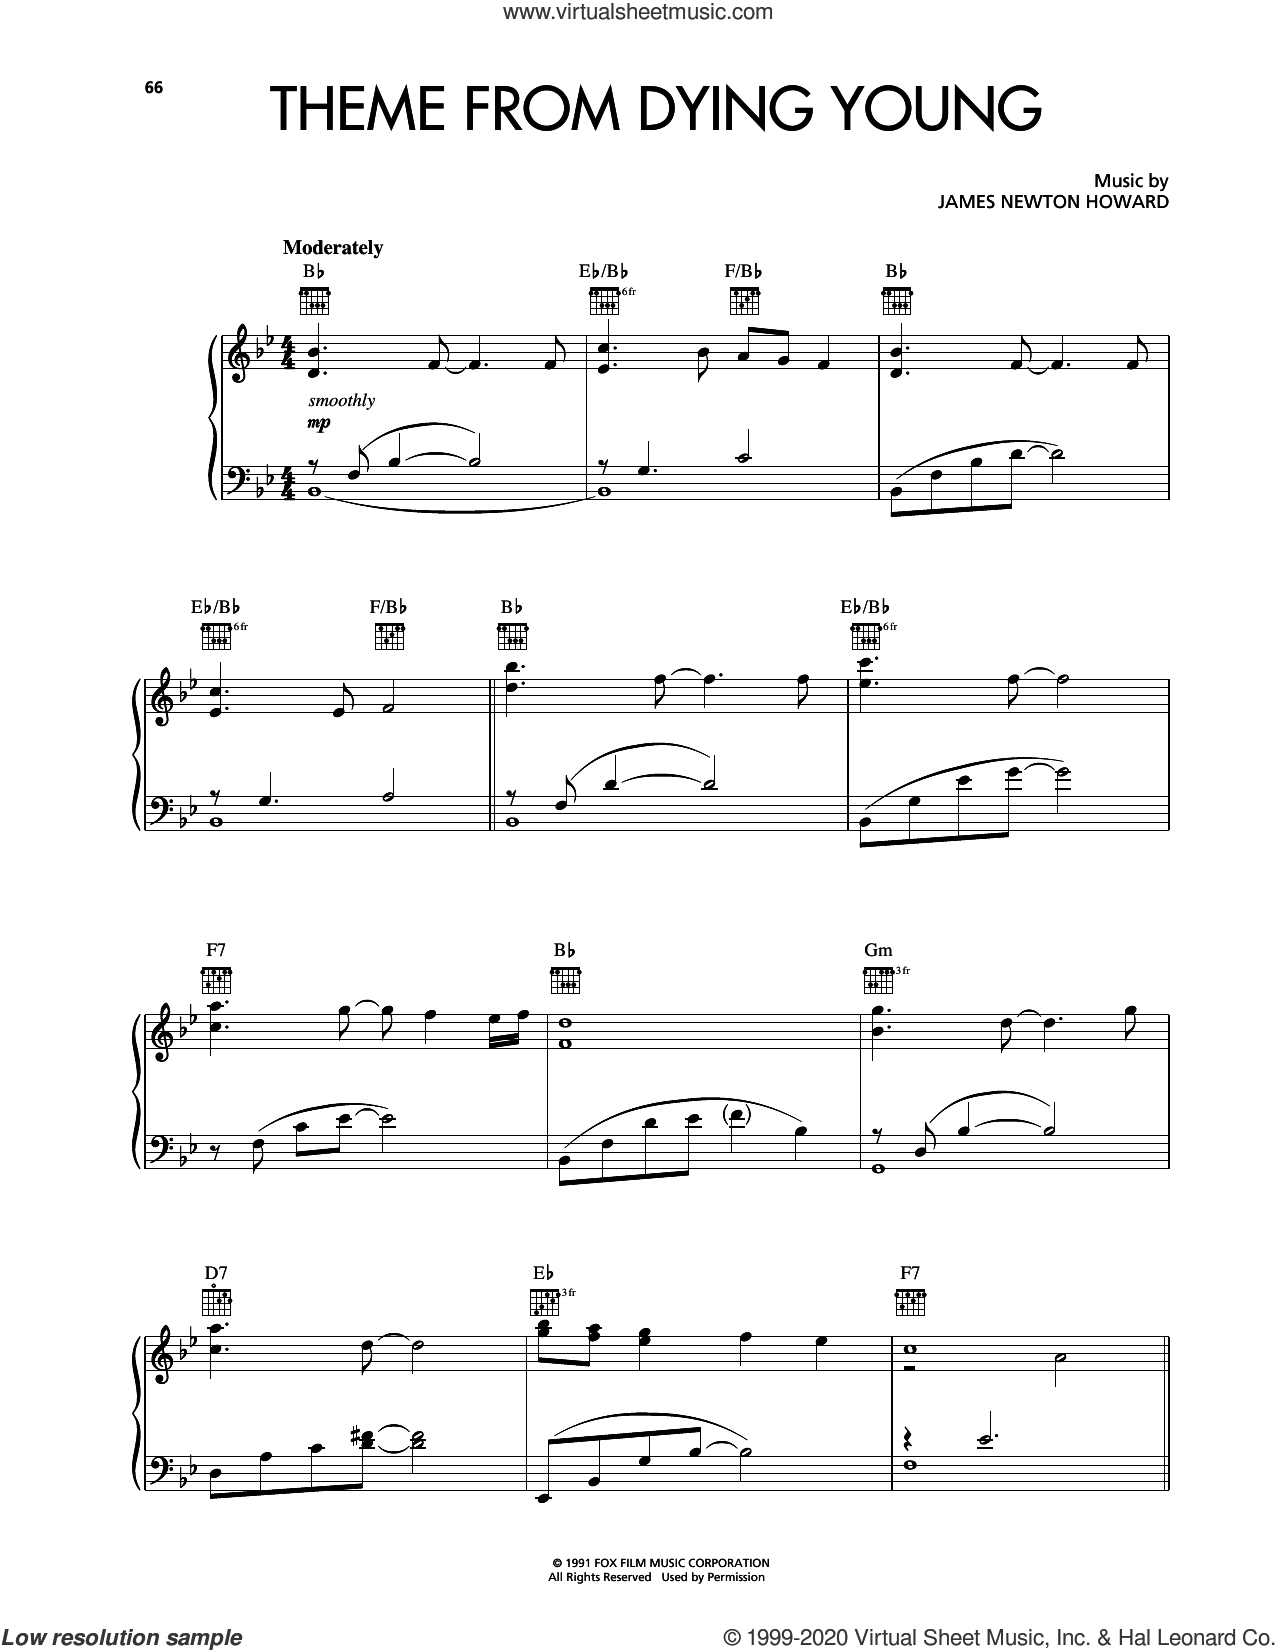 Theme From Dying Young sheet music for piano solo by Kenny G and James Newton Howard, intermediate skill level